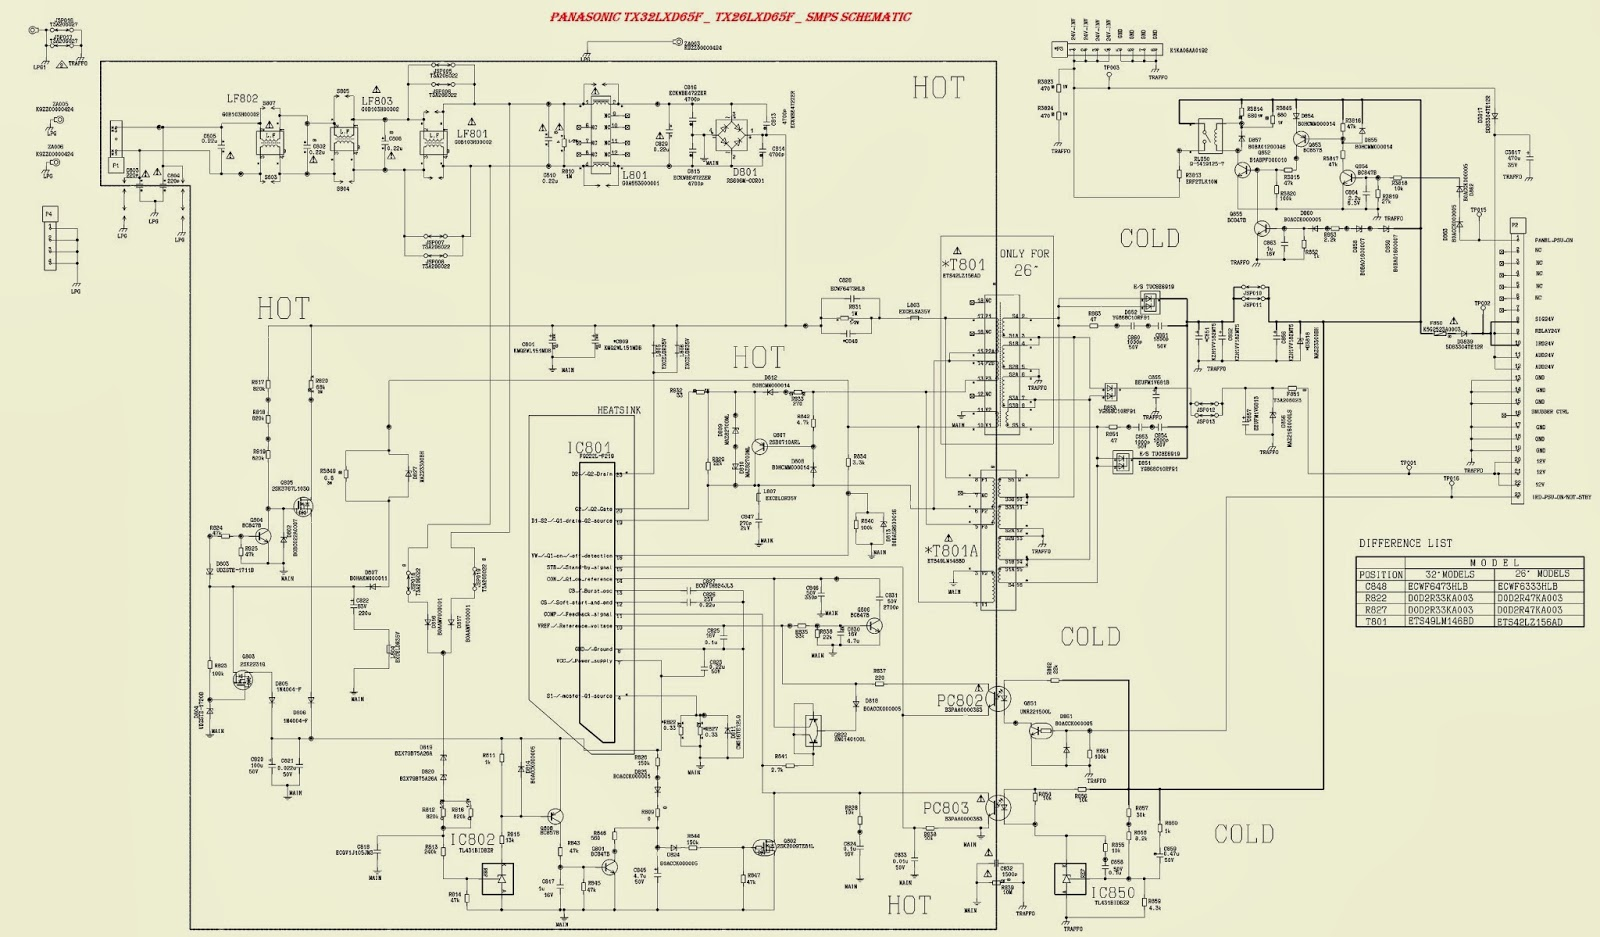 Panasonic Schematic Diagram Trusted Wiring Online Jvc K Series Circuit Tx 26lxd65f Tx32lxd65f Smps Power Supply Ge Range